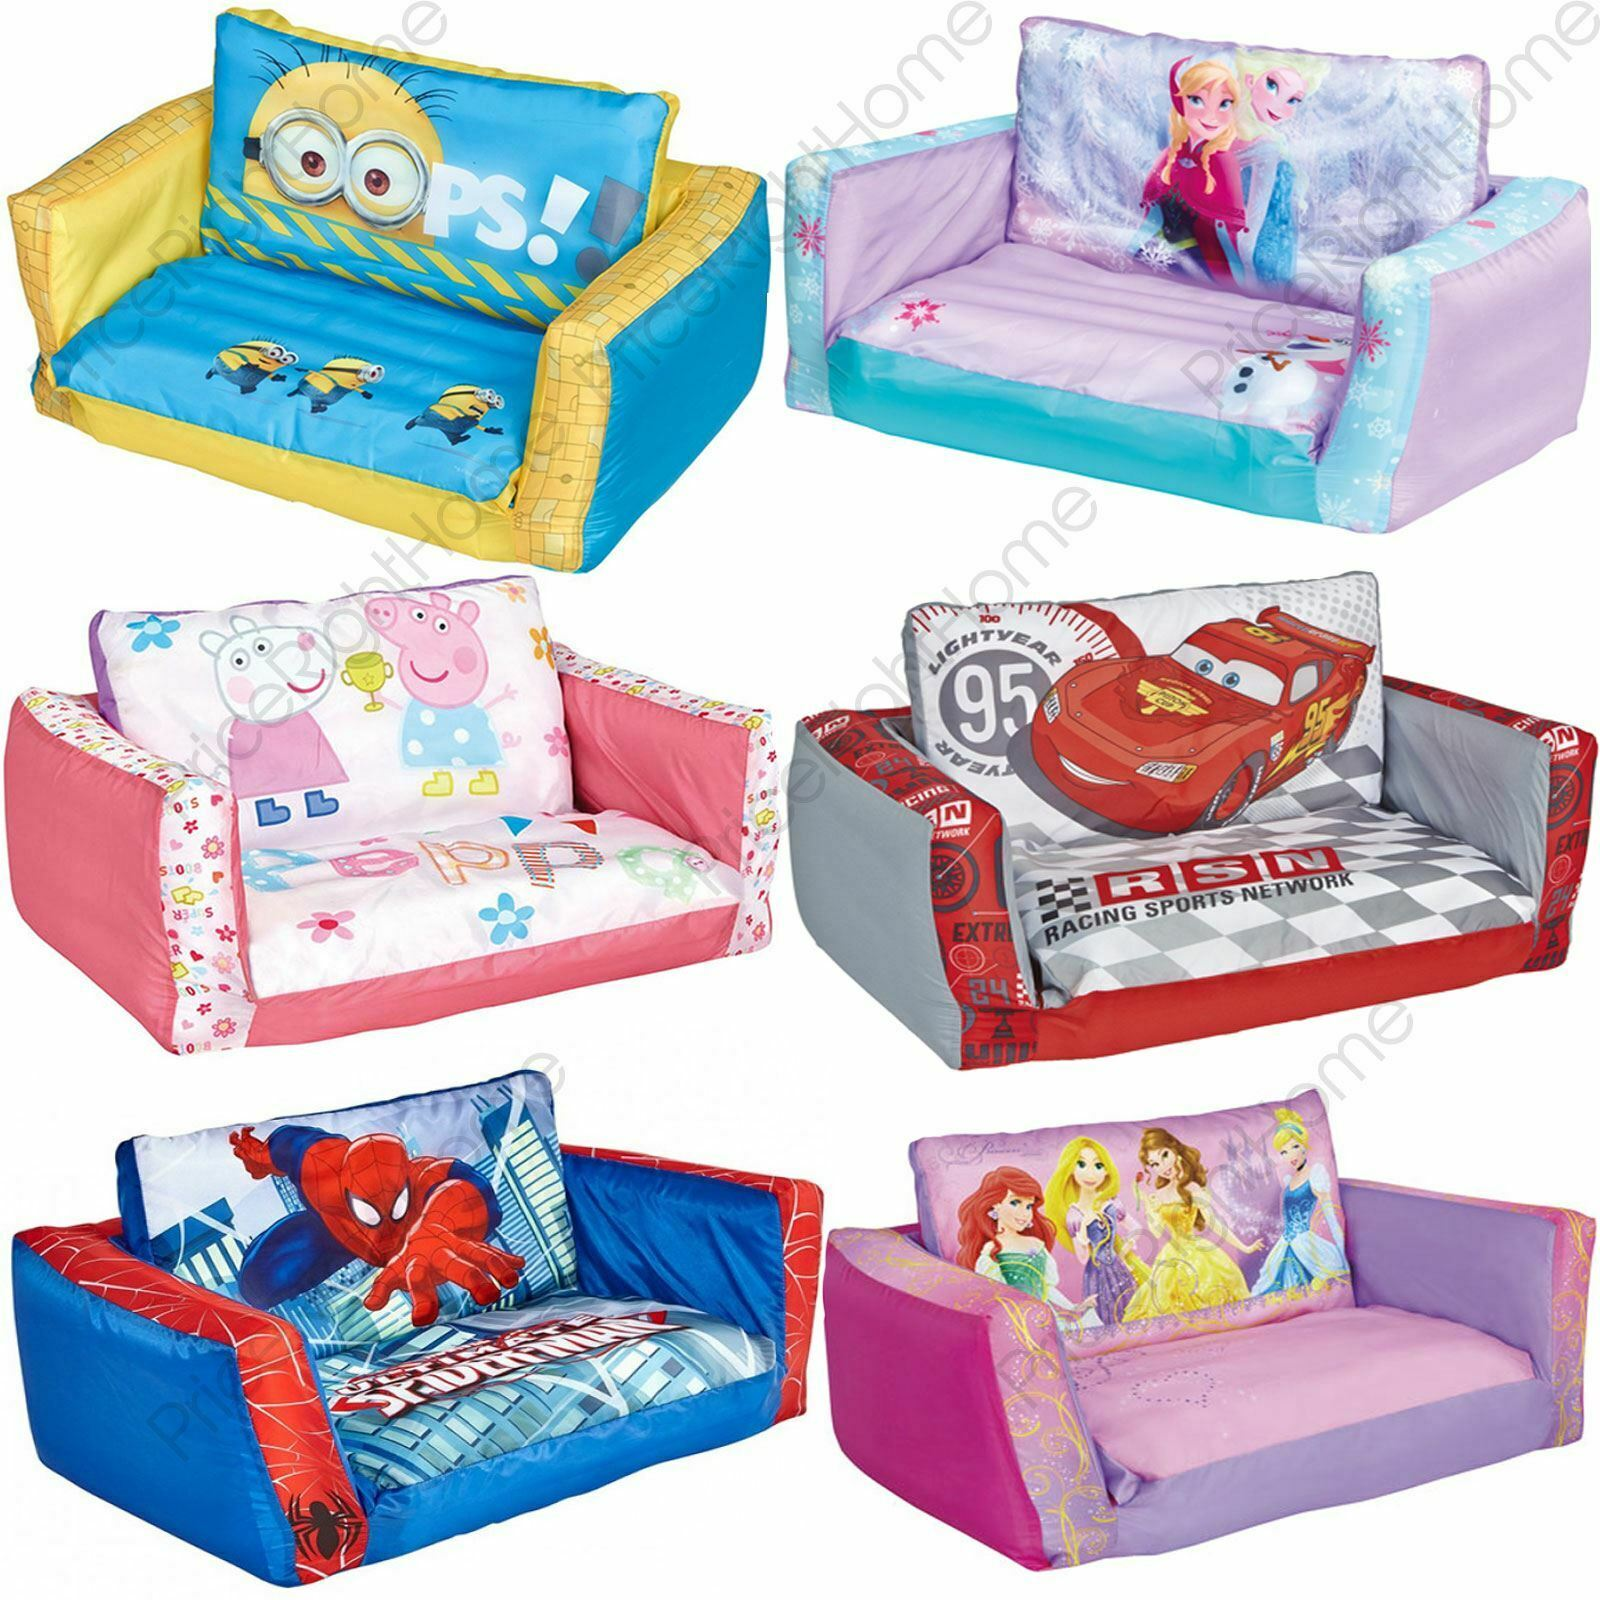 mickey mouse flip out sofa australia circular leather sofas range inflatable kids room new minions